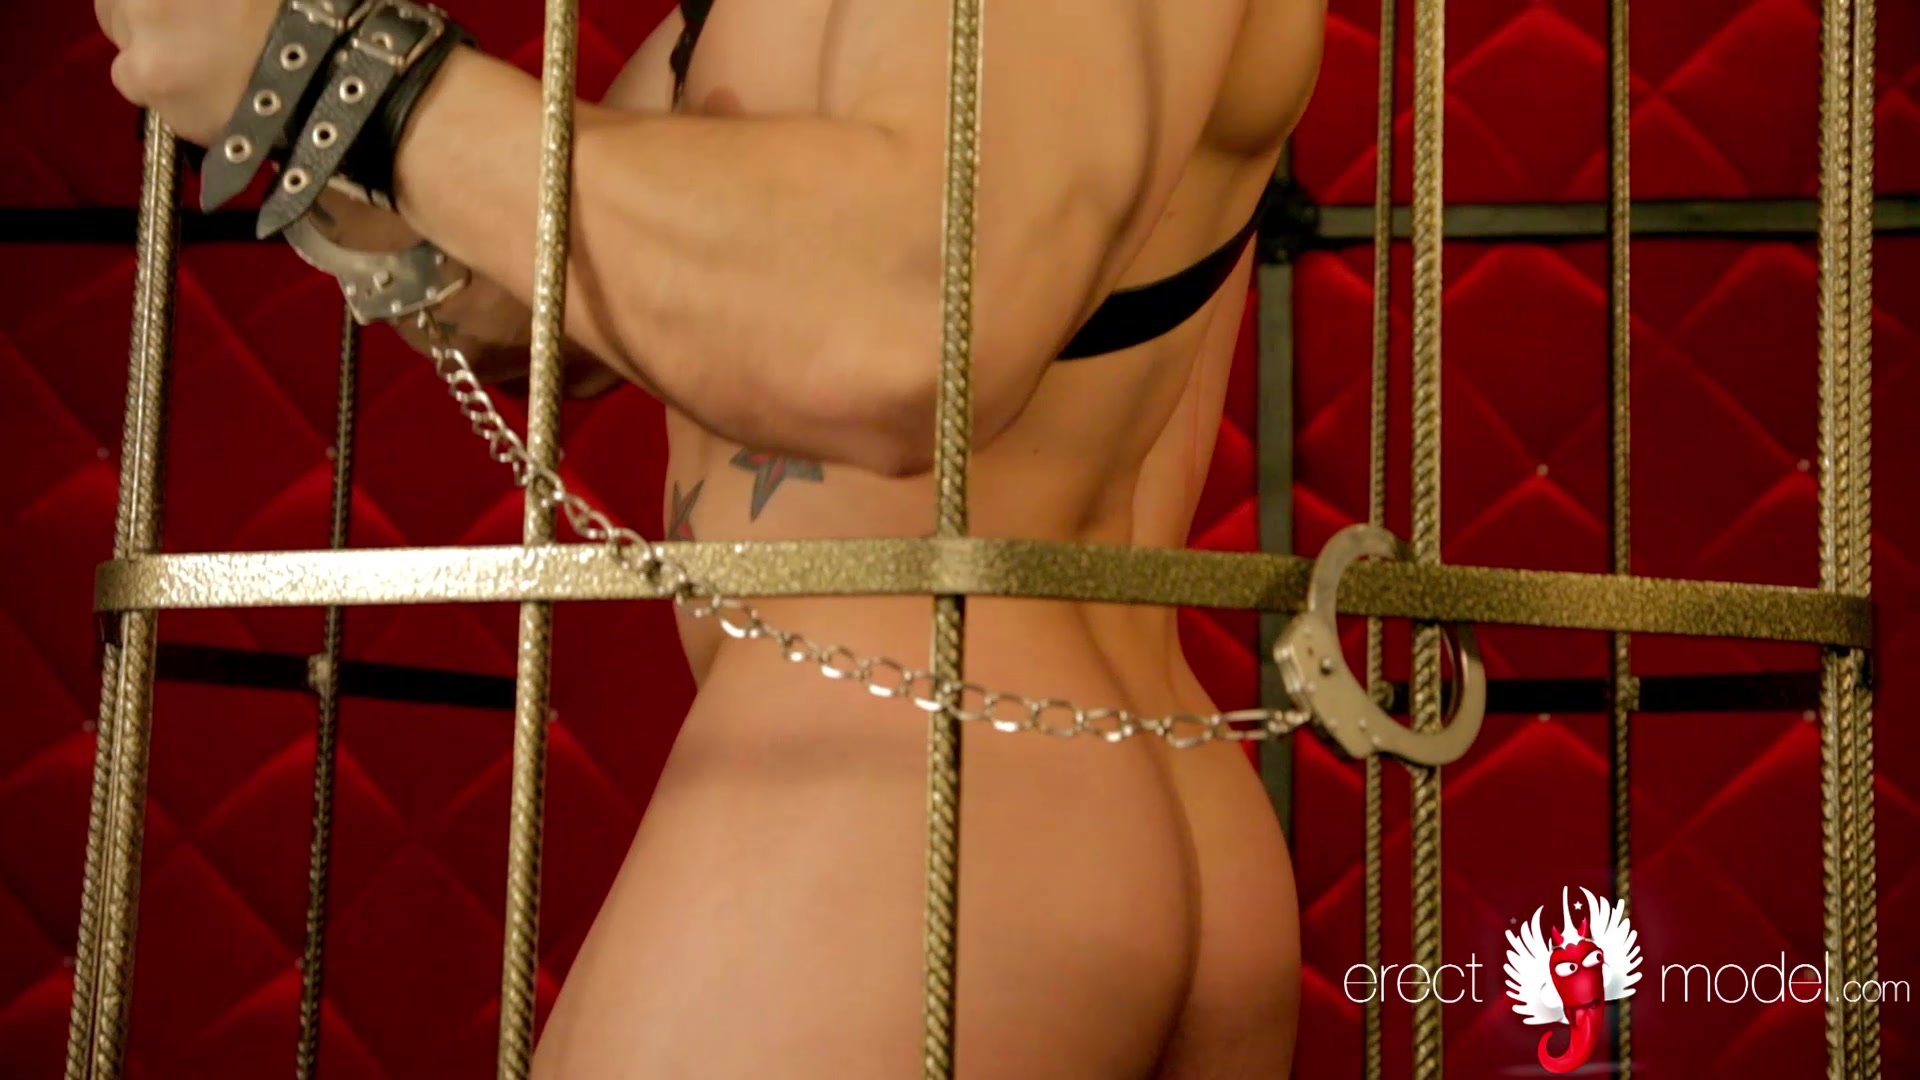 BDSM man in cage